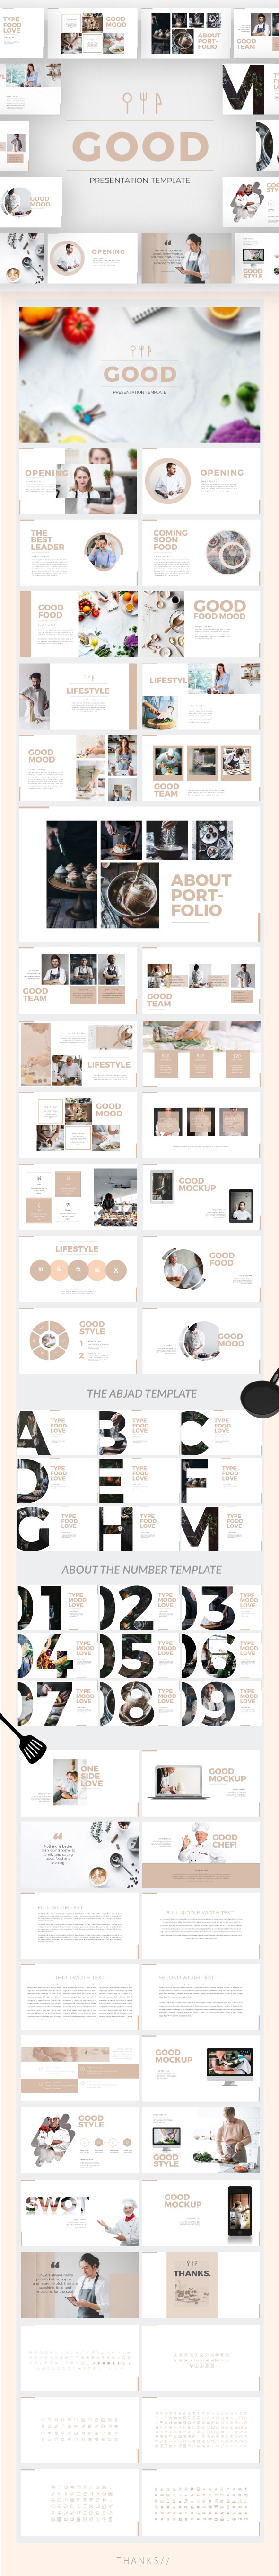 GraphicRiver Good Keynote Presentation Template 21093275